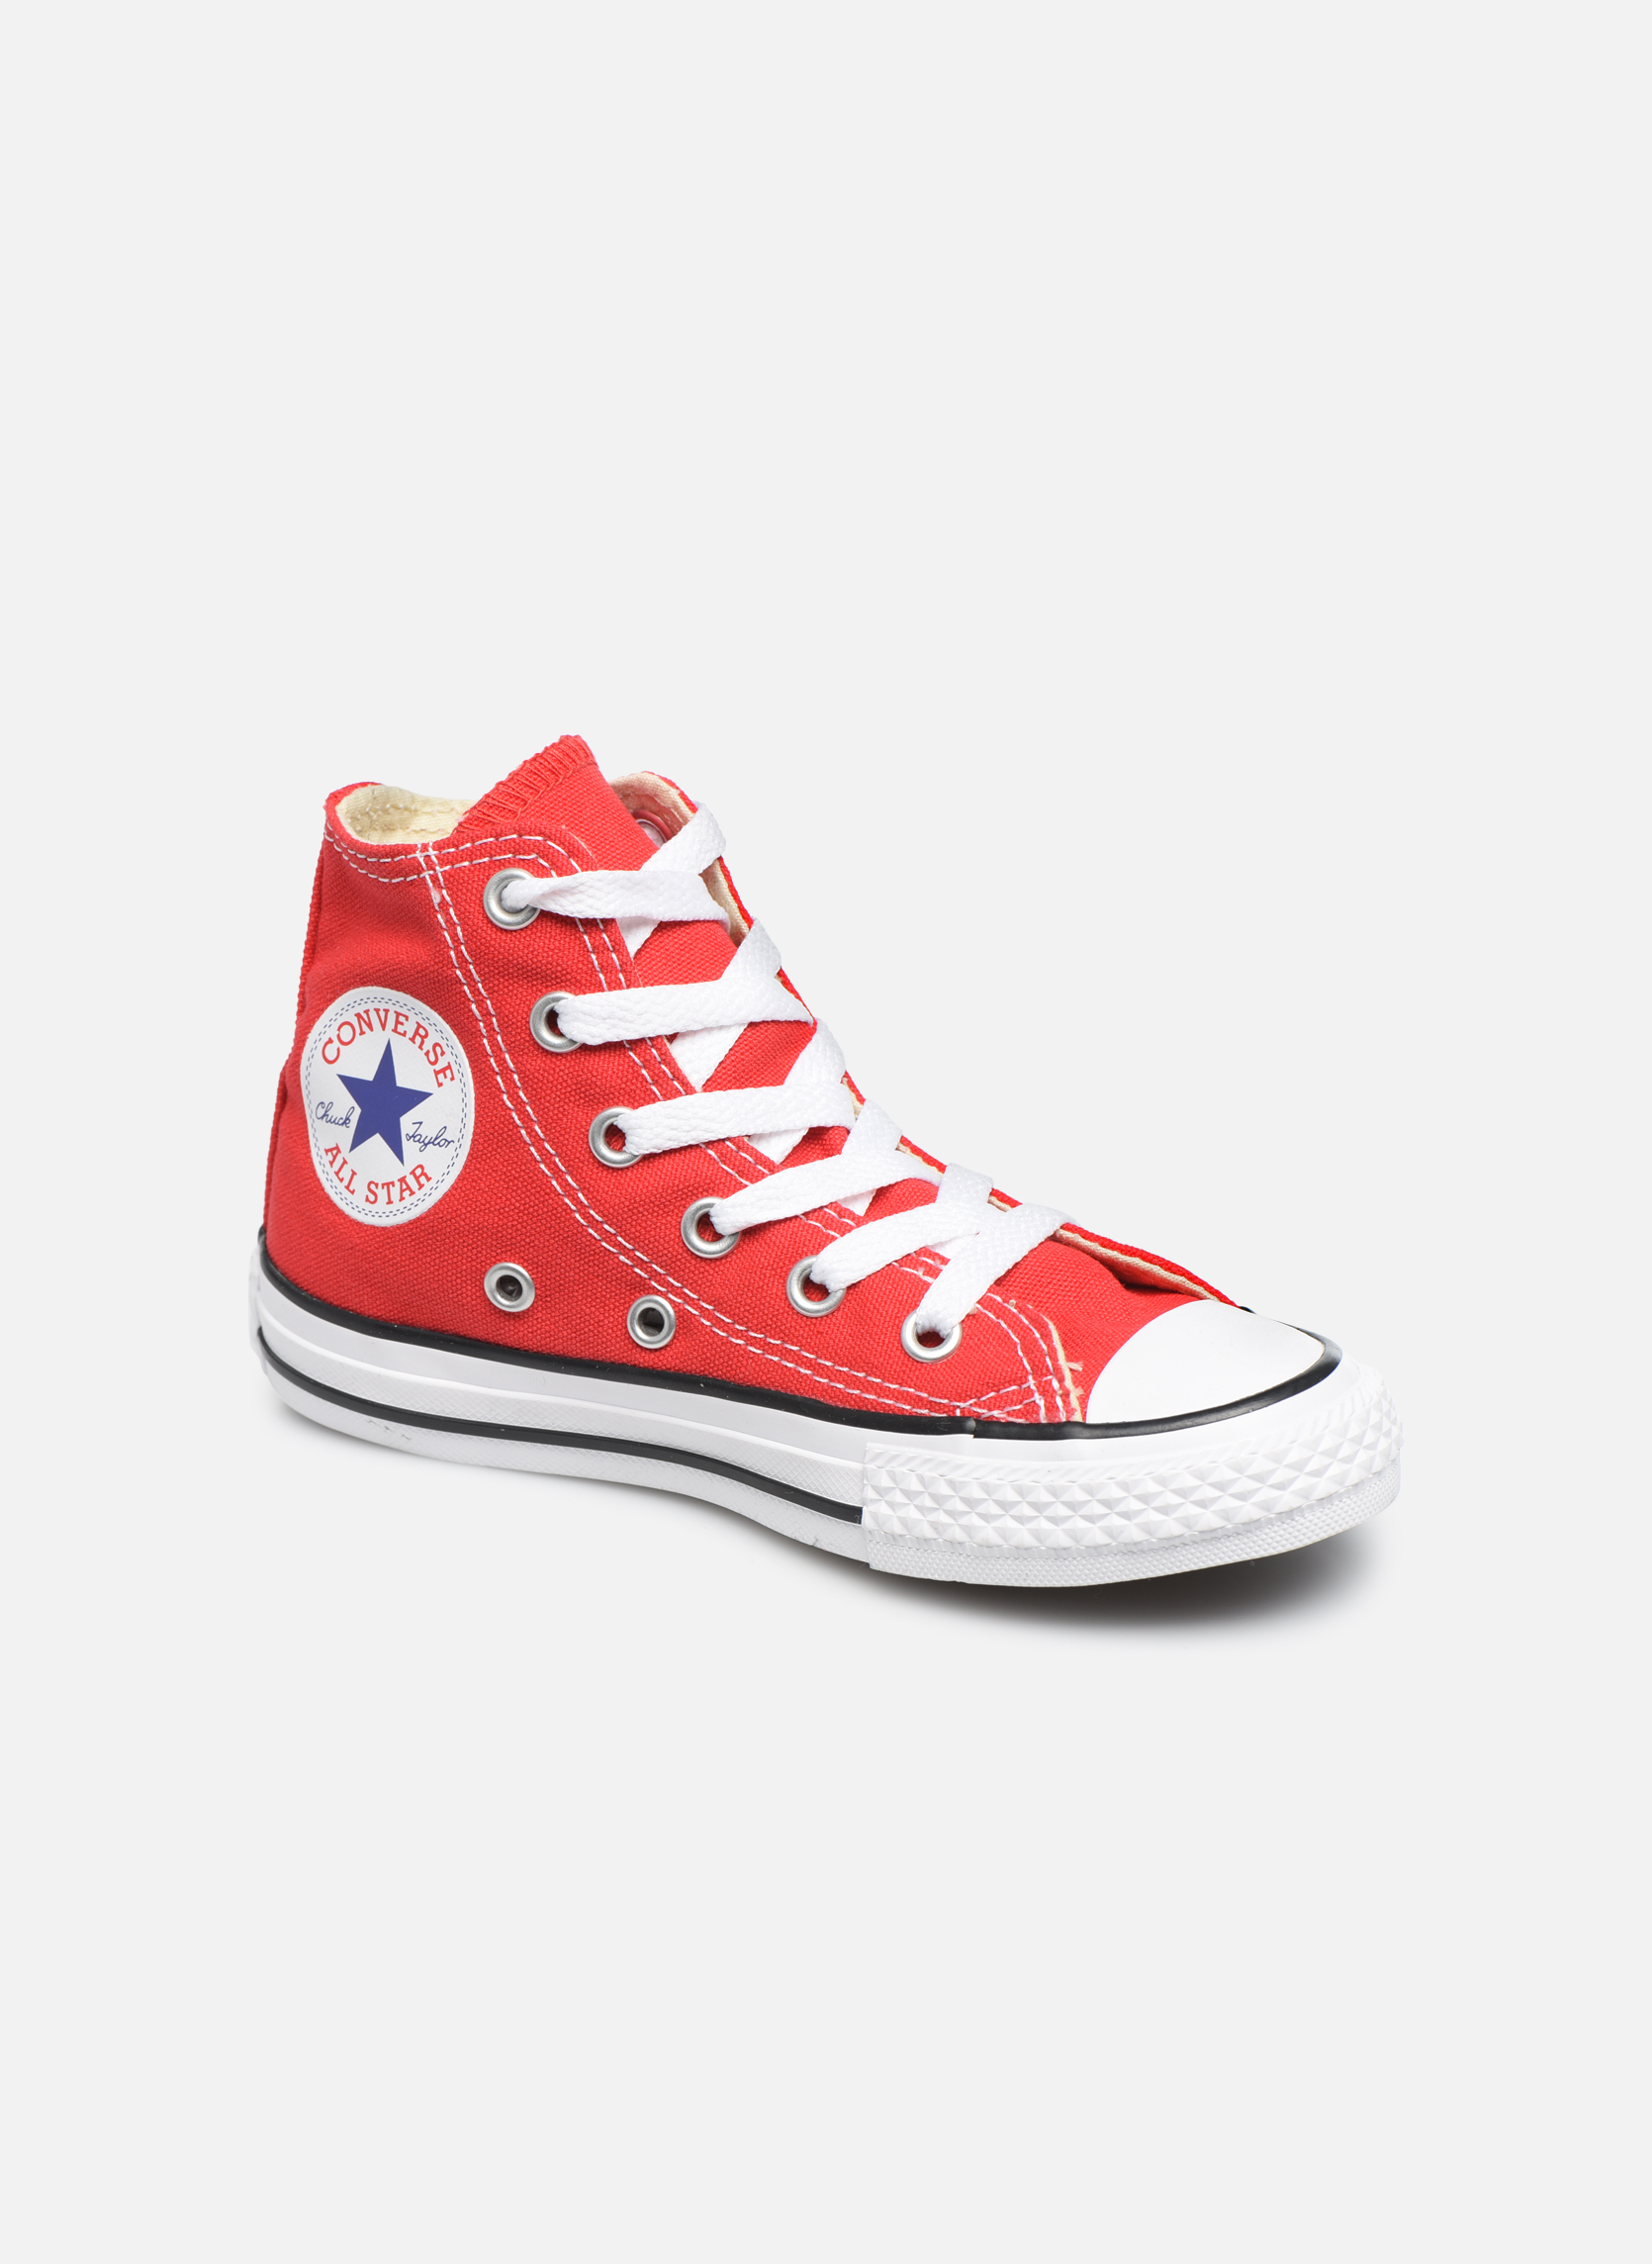 Converse CHUCK TAYLOR ALL STAR CORE HI Rouge fQbB1